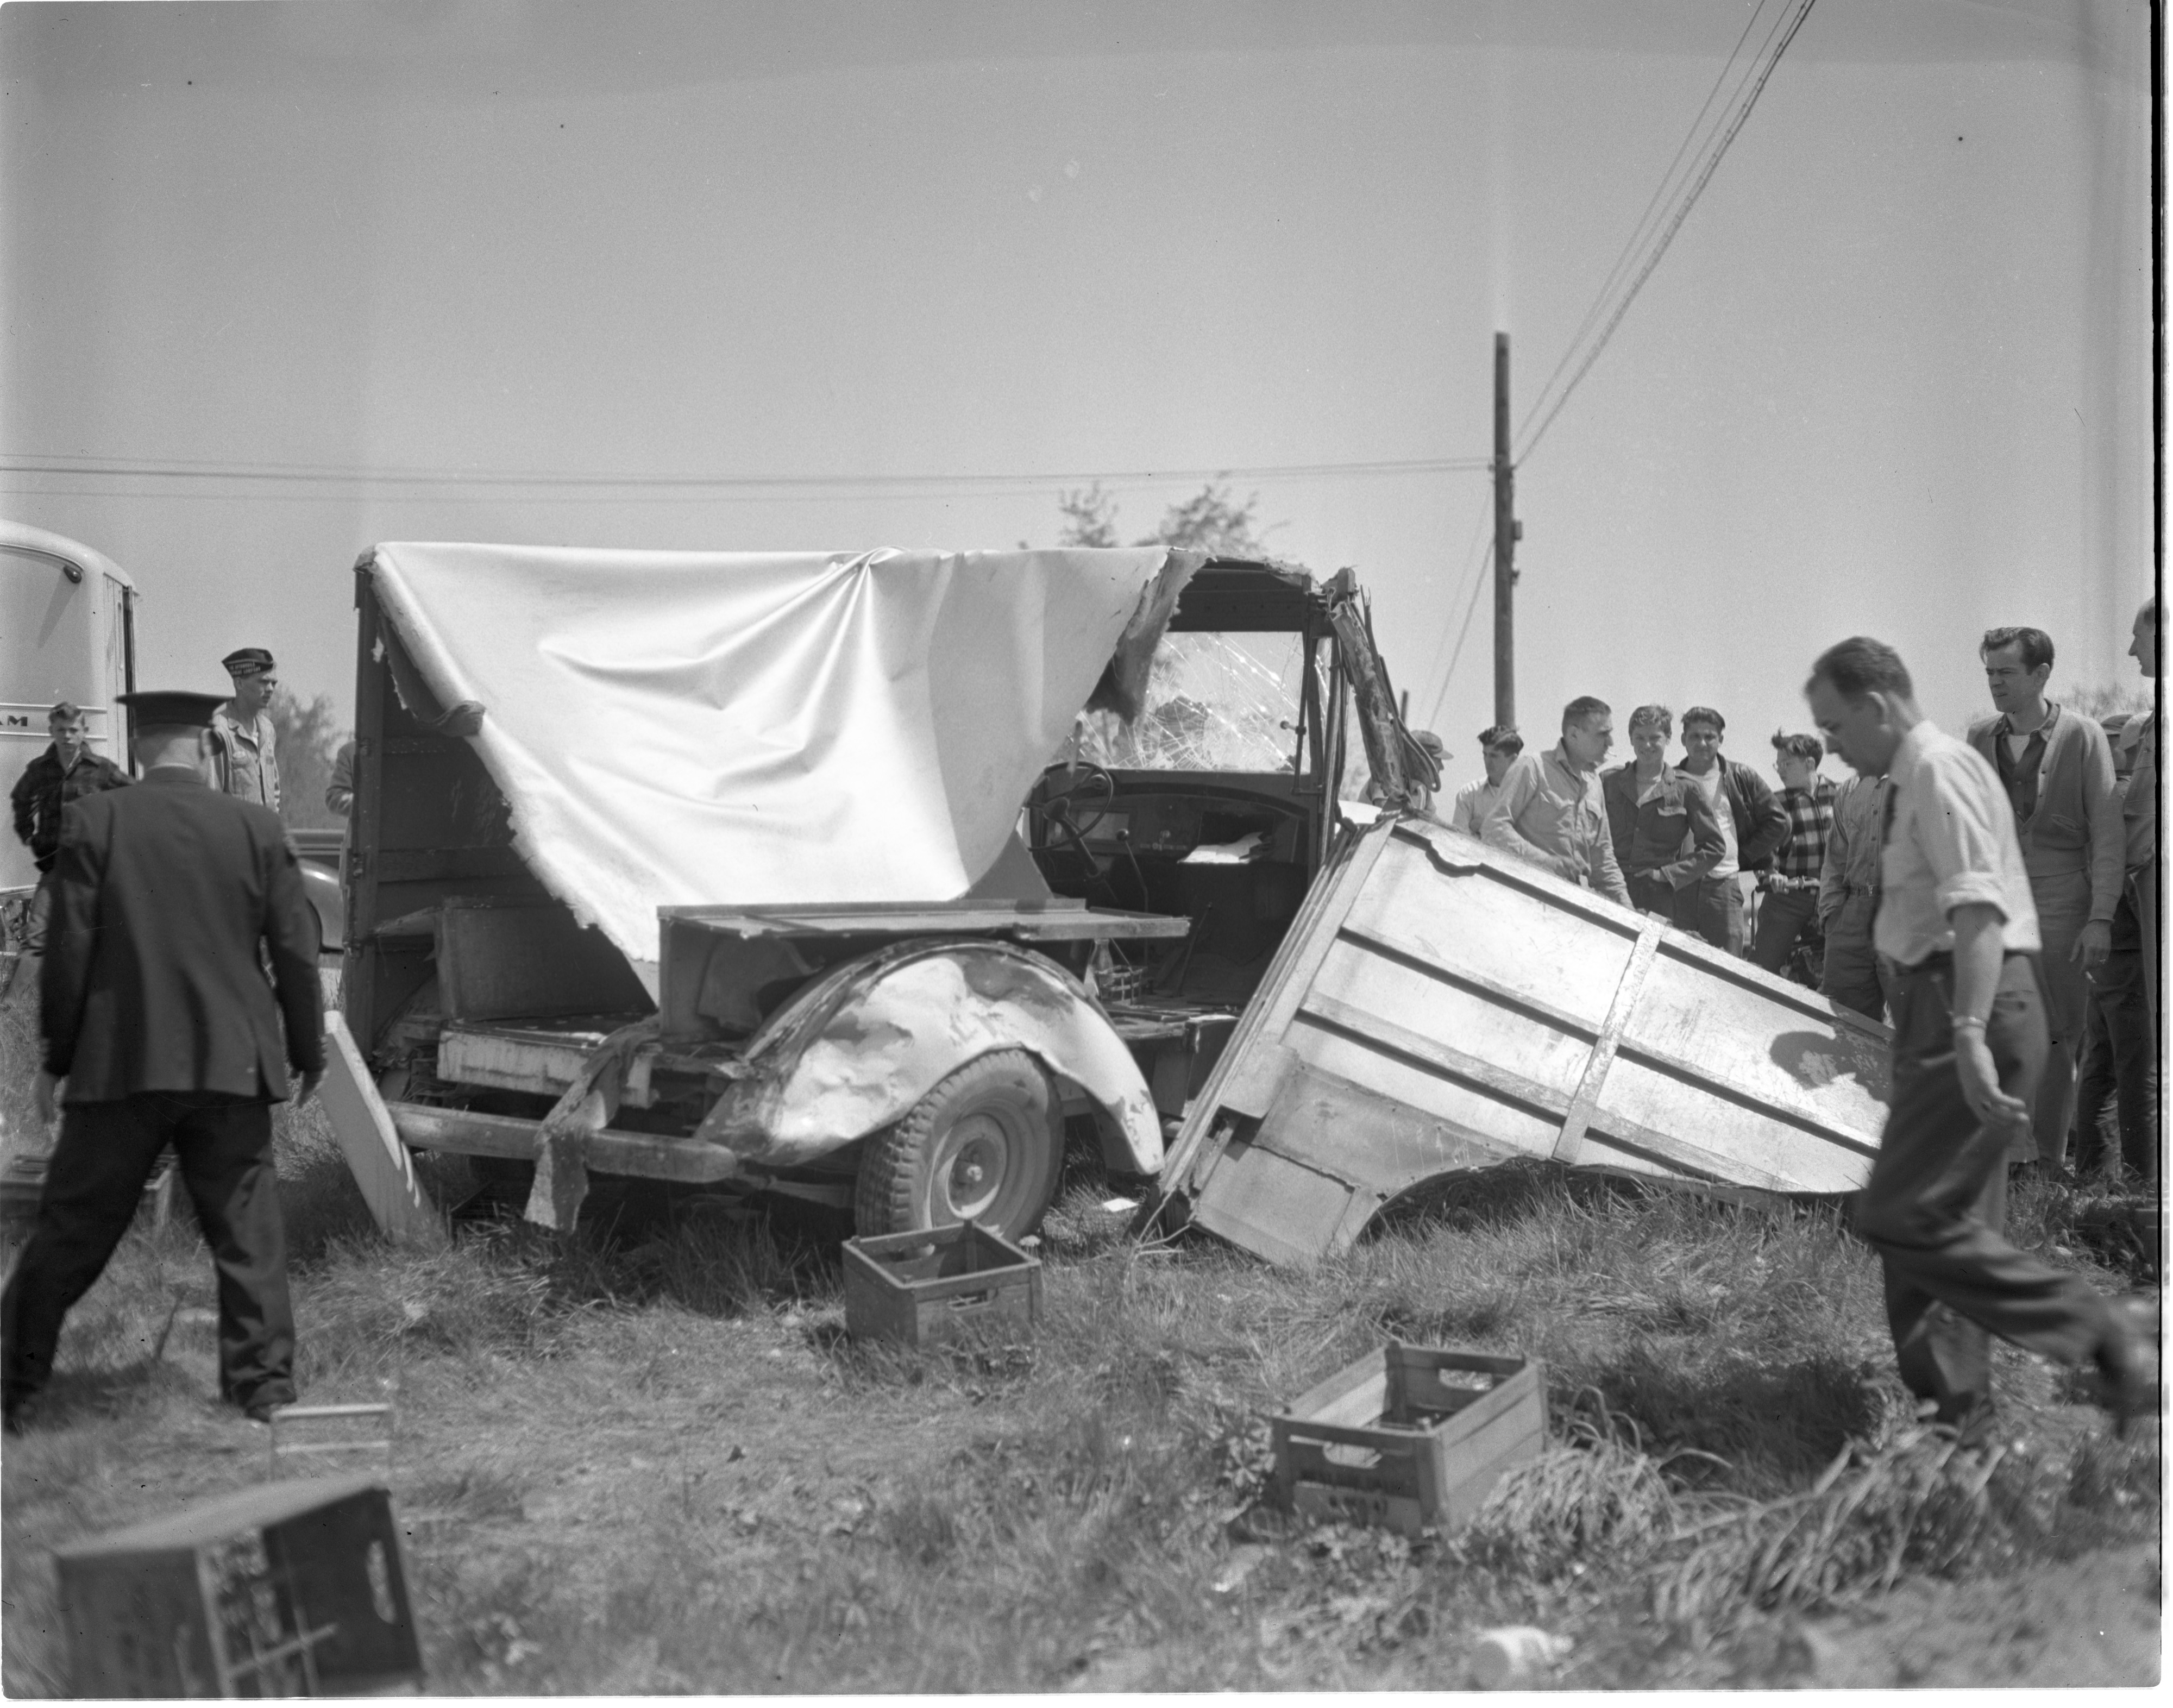 Remains Of West Side Dairy Milk Truck After Being Hit By A Sedan On Jackson Rd At West Delhi, May 1949 image